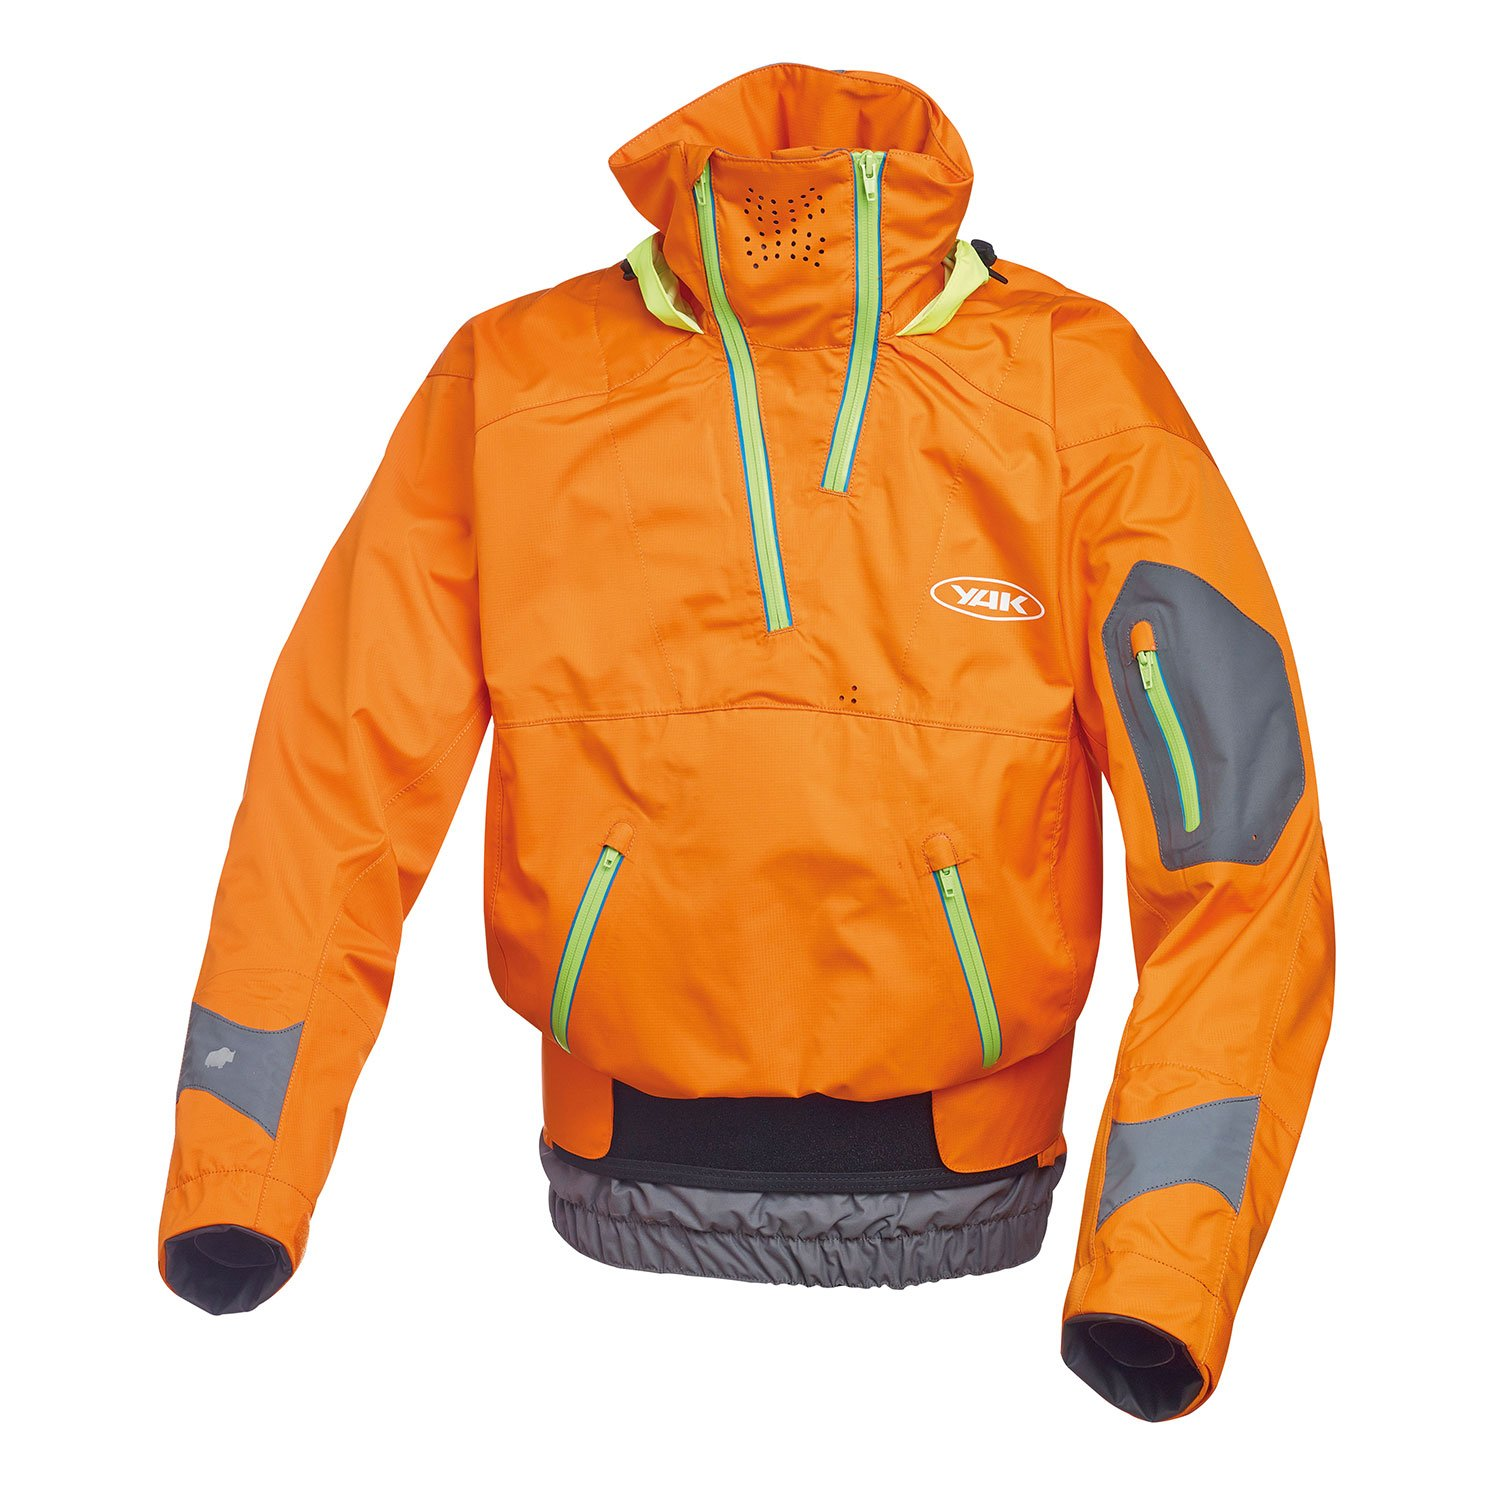 Yak Glacier Touring Cag Orange 2723